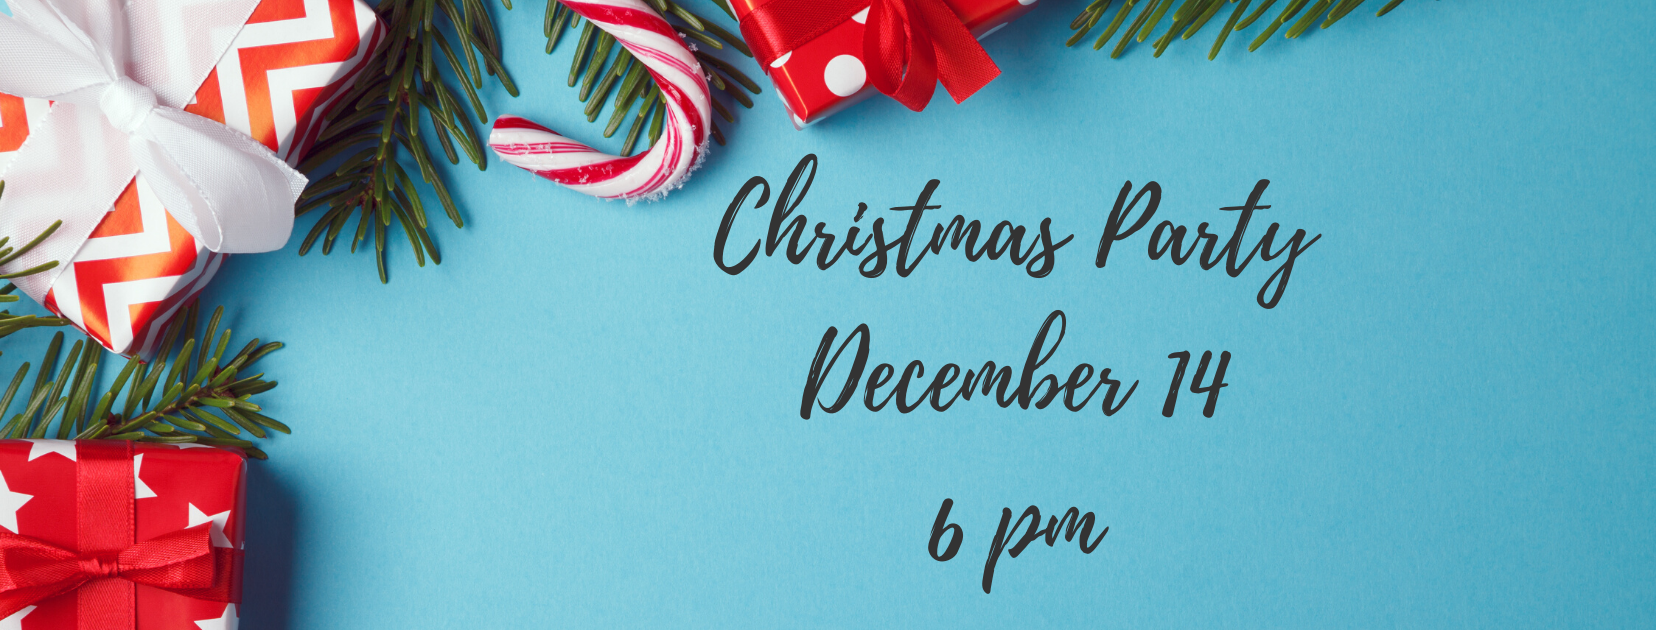 Christmas Party December 14 5 pm